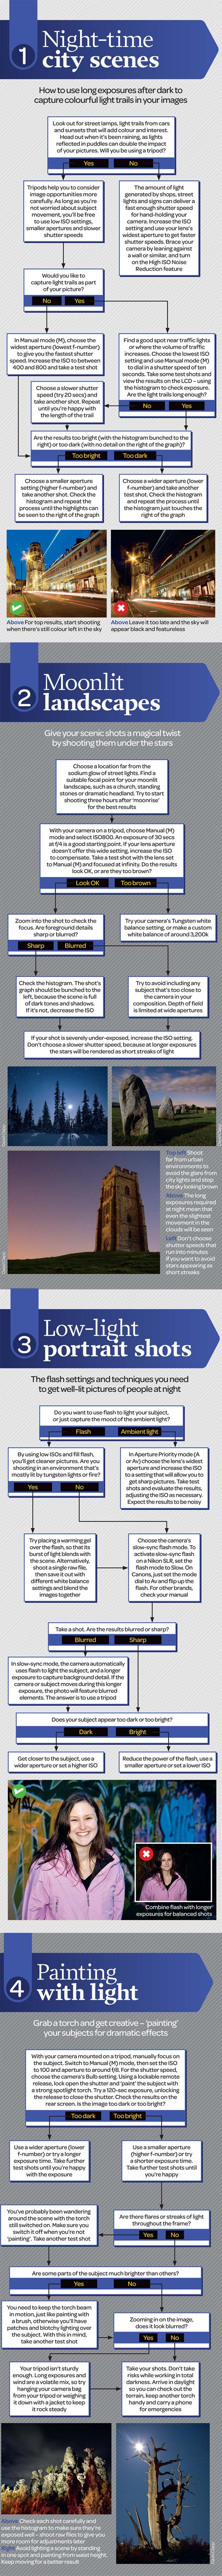 Free night photography cheat sheet: how to shoot popular low-light scenes | Digital Camera World